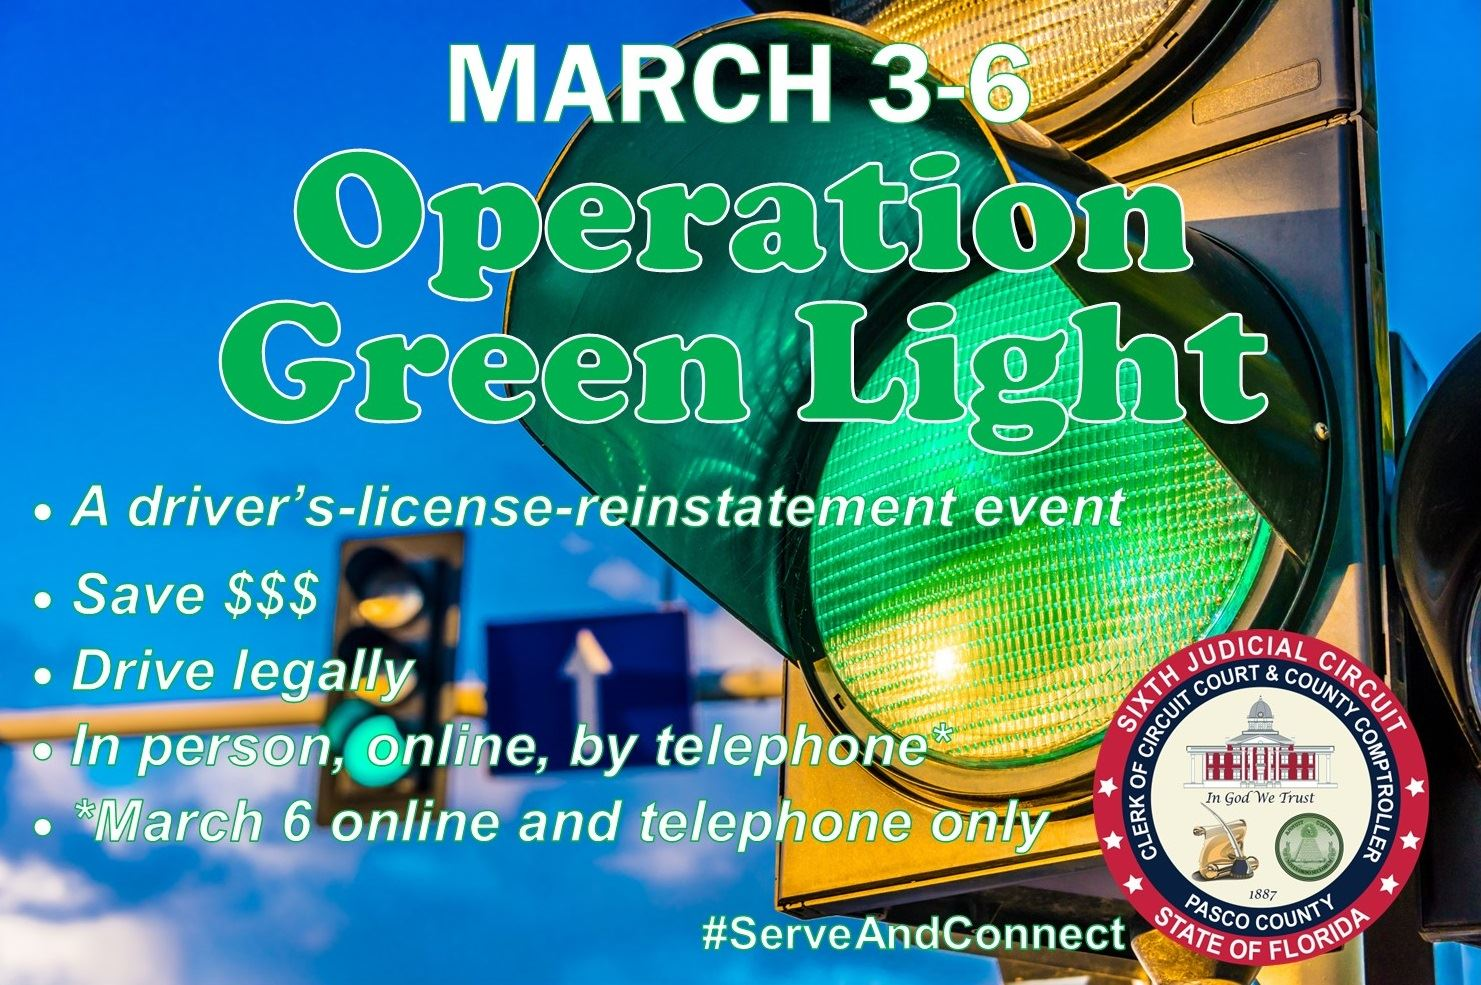 Traffic light on a blue sky background with March 3-6 and Operation Green Light in headline